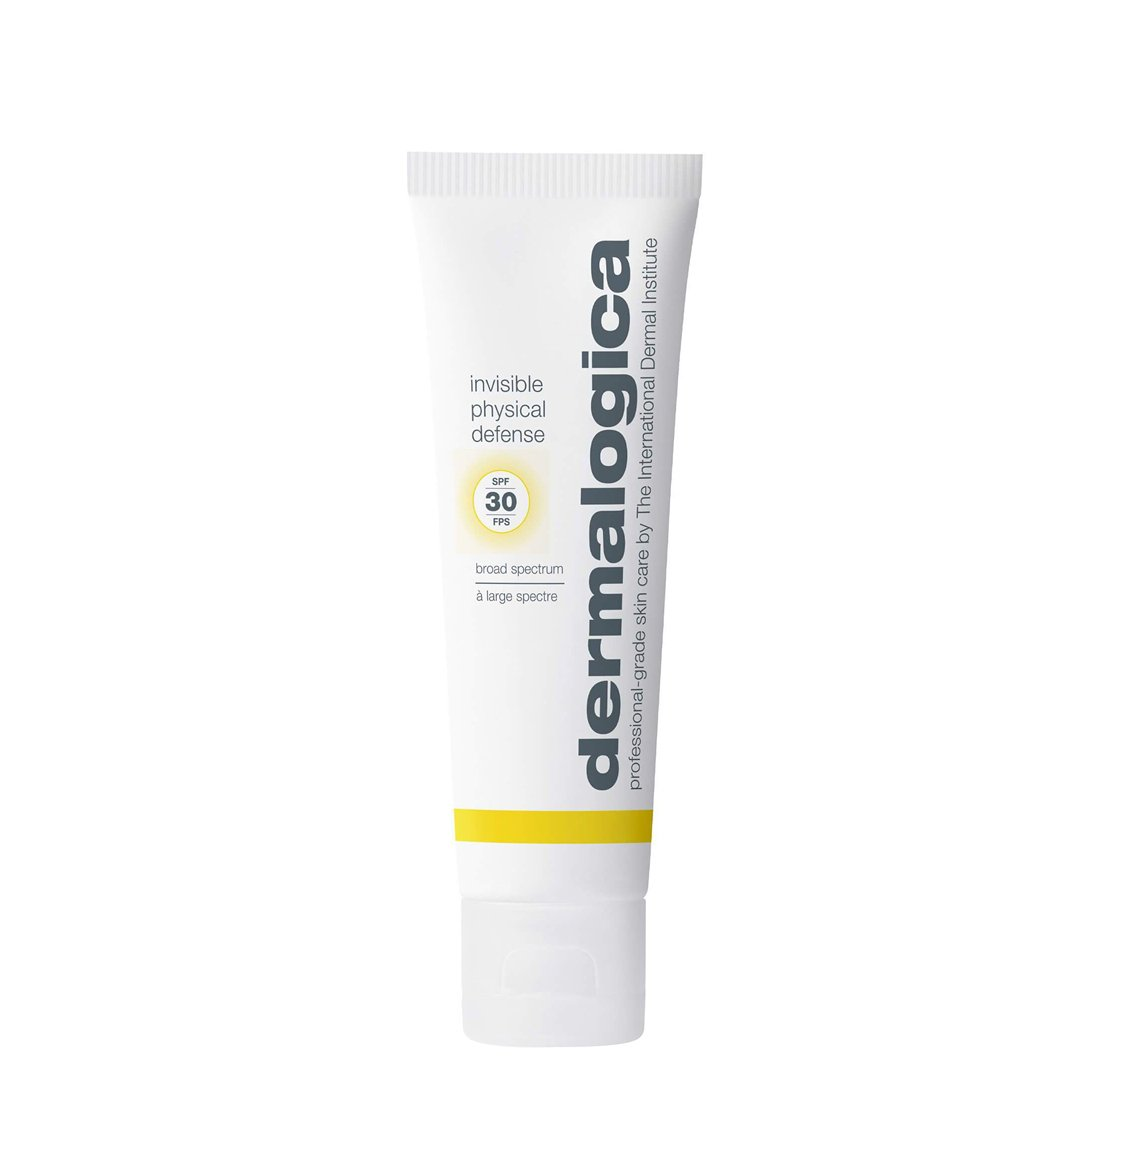 Dermalogica Invisible Physical Defense SPF30 15ml